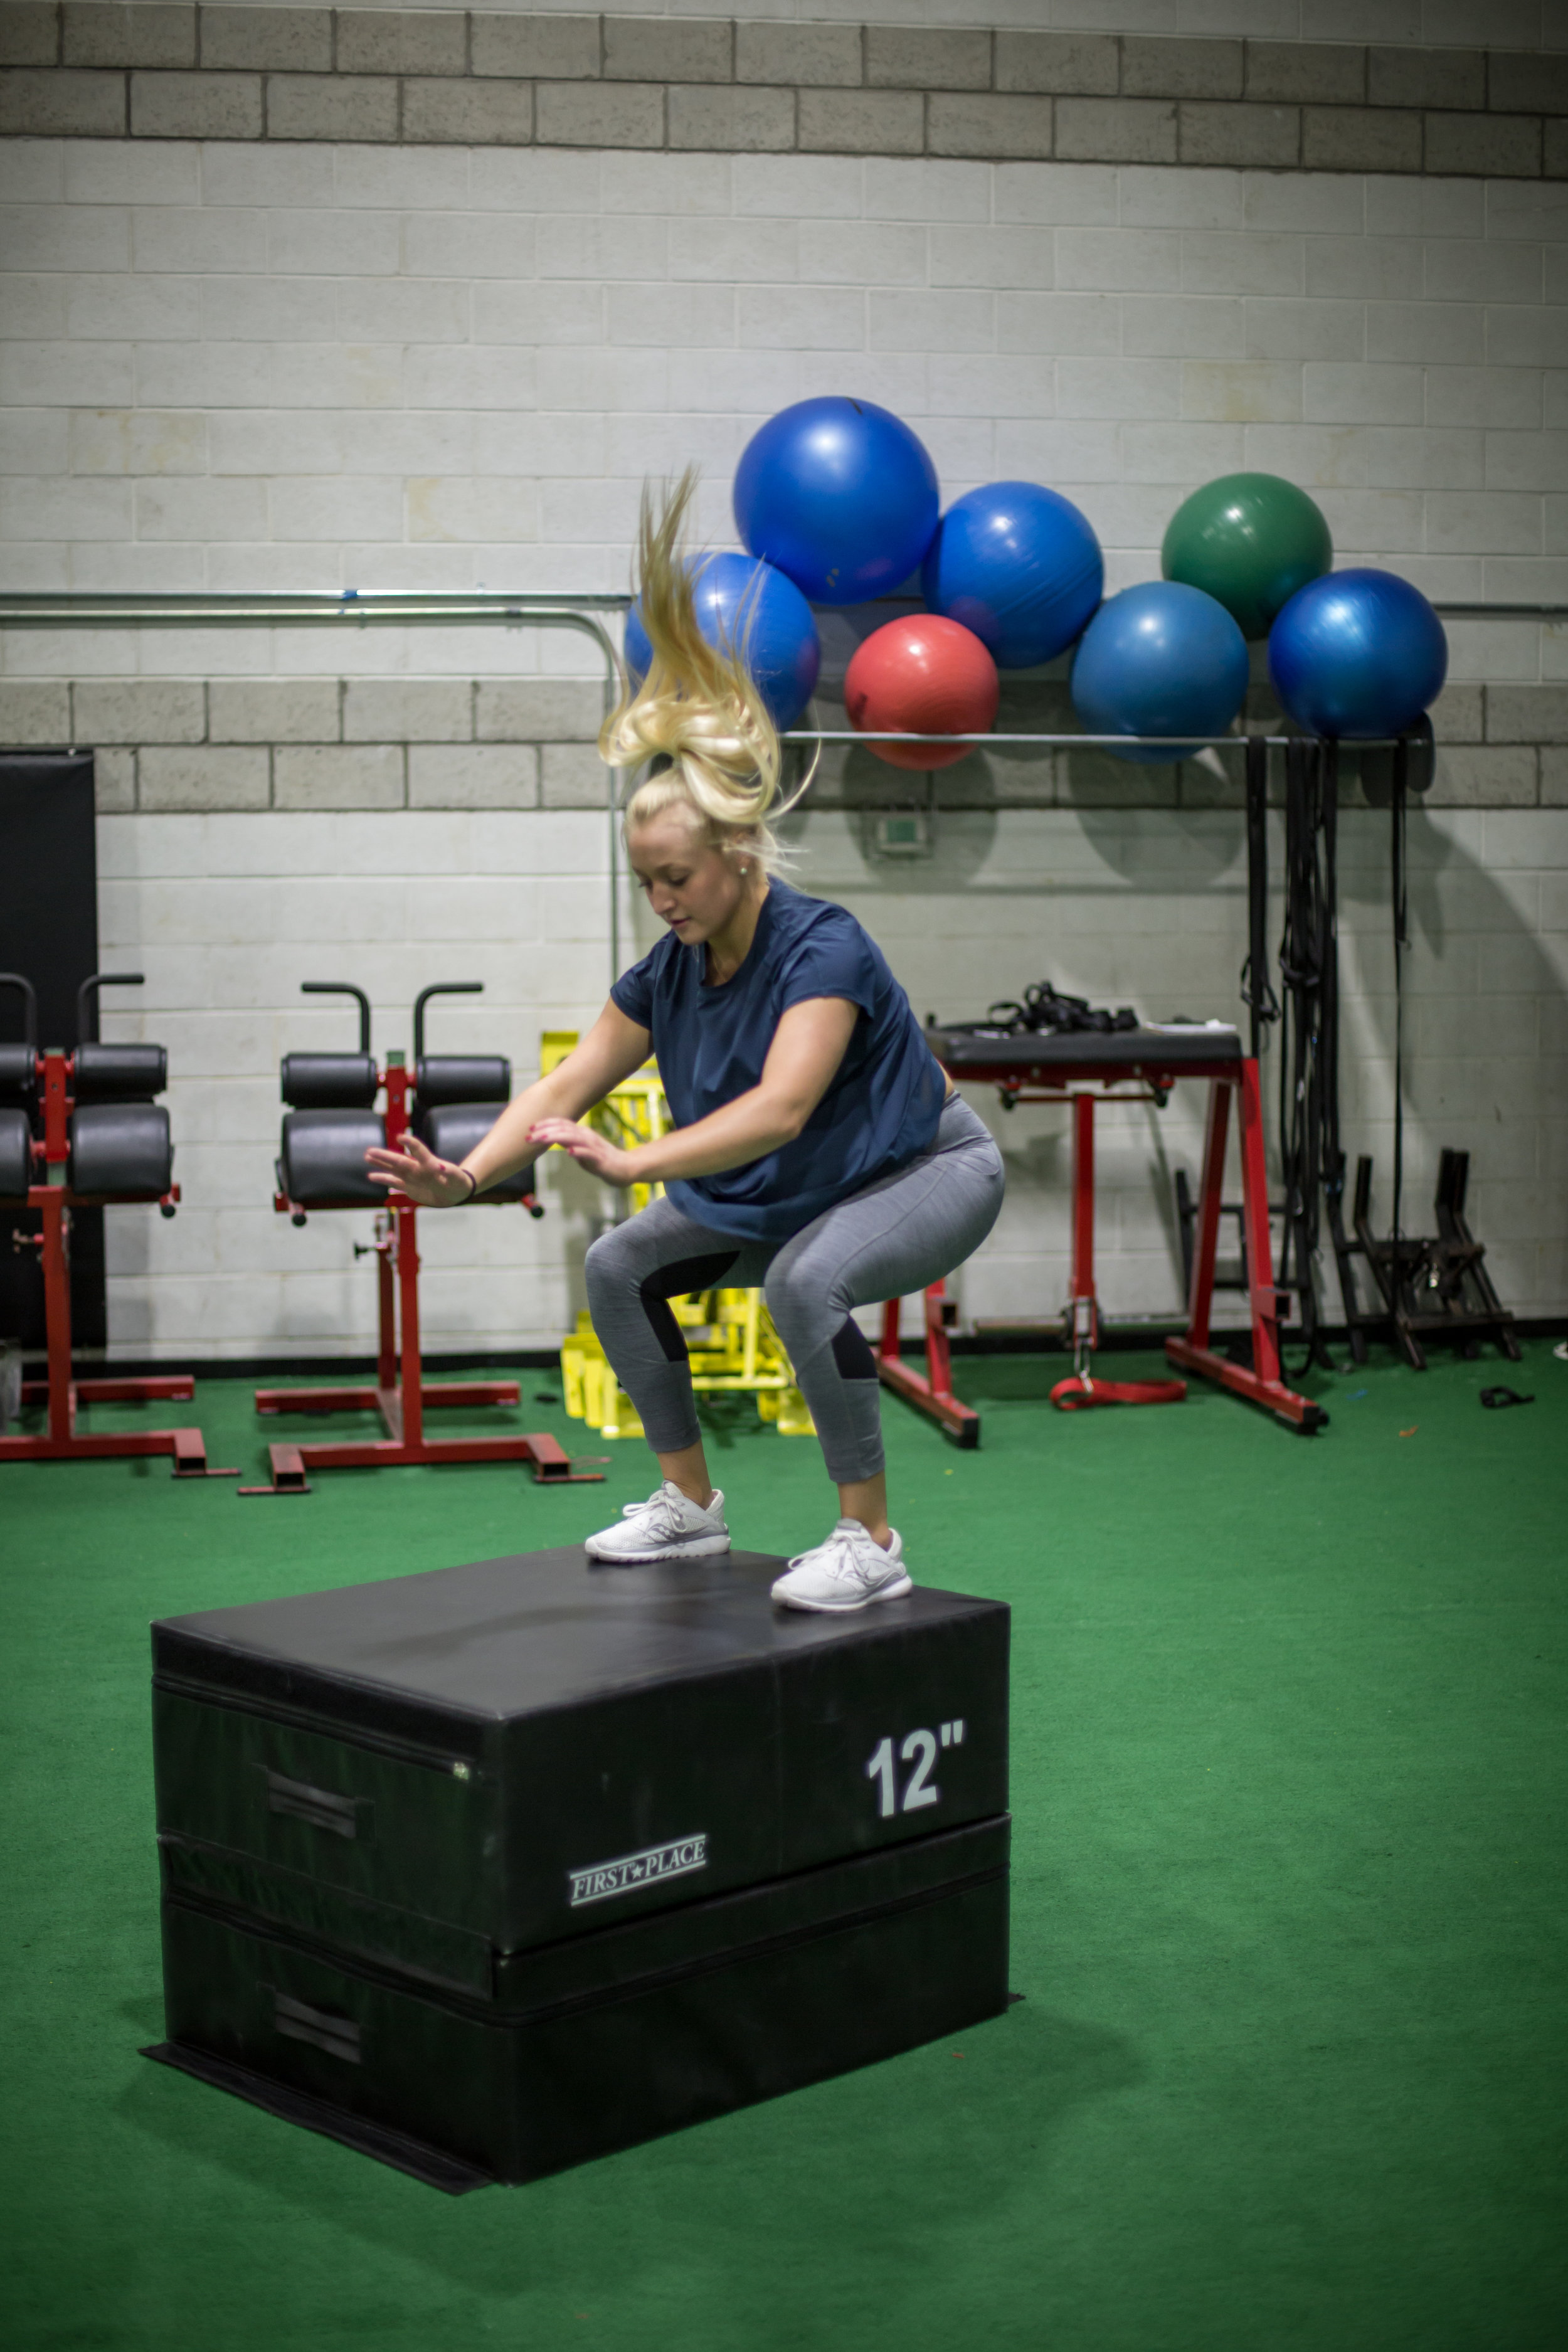 Maryland physical therapy, best sports physical therapy, Baltimore sports physical therapy, sports injuries, Elkridge physical therapy, Columbia physical therapy